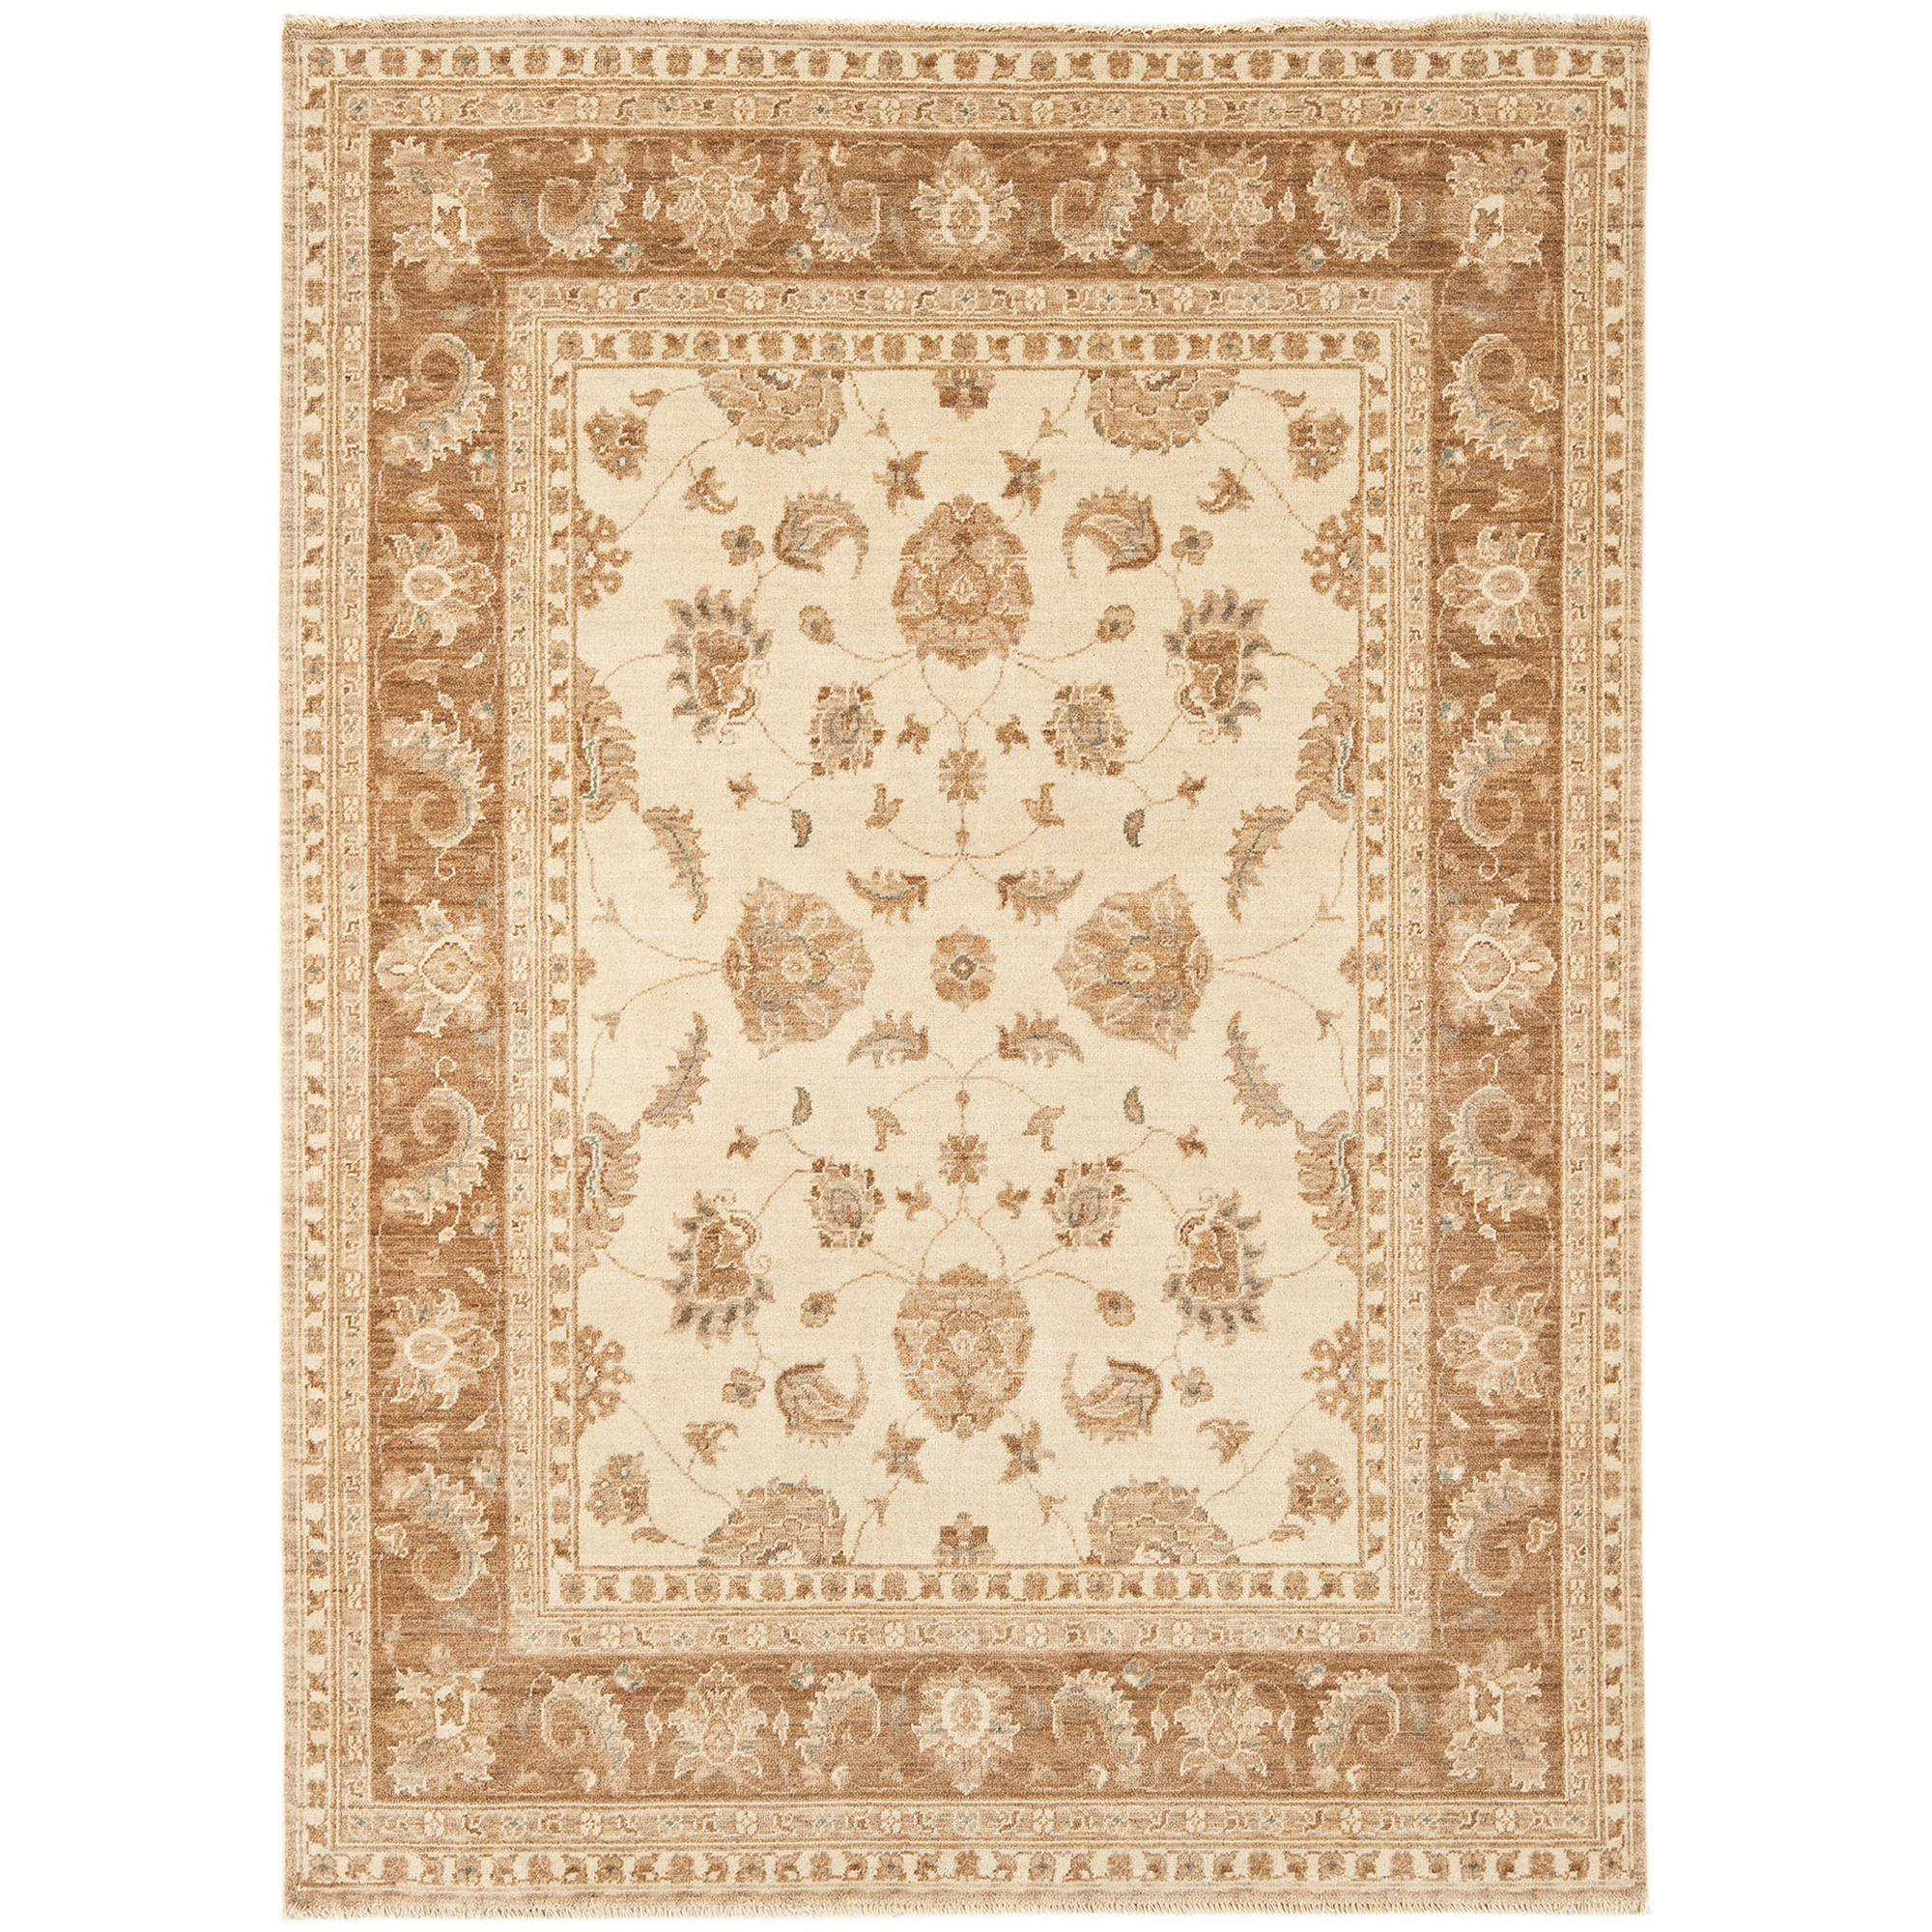 Chobi Rugs CB03 in Beige and Brown